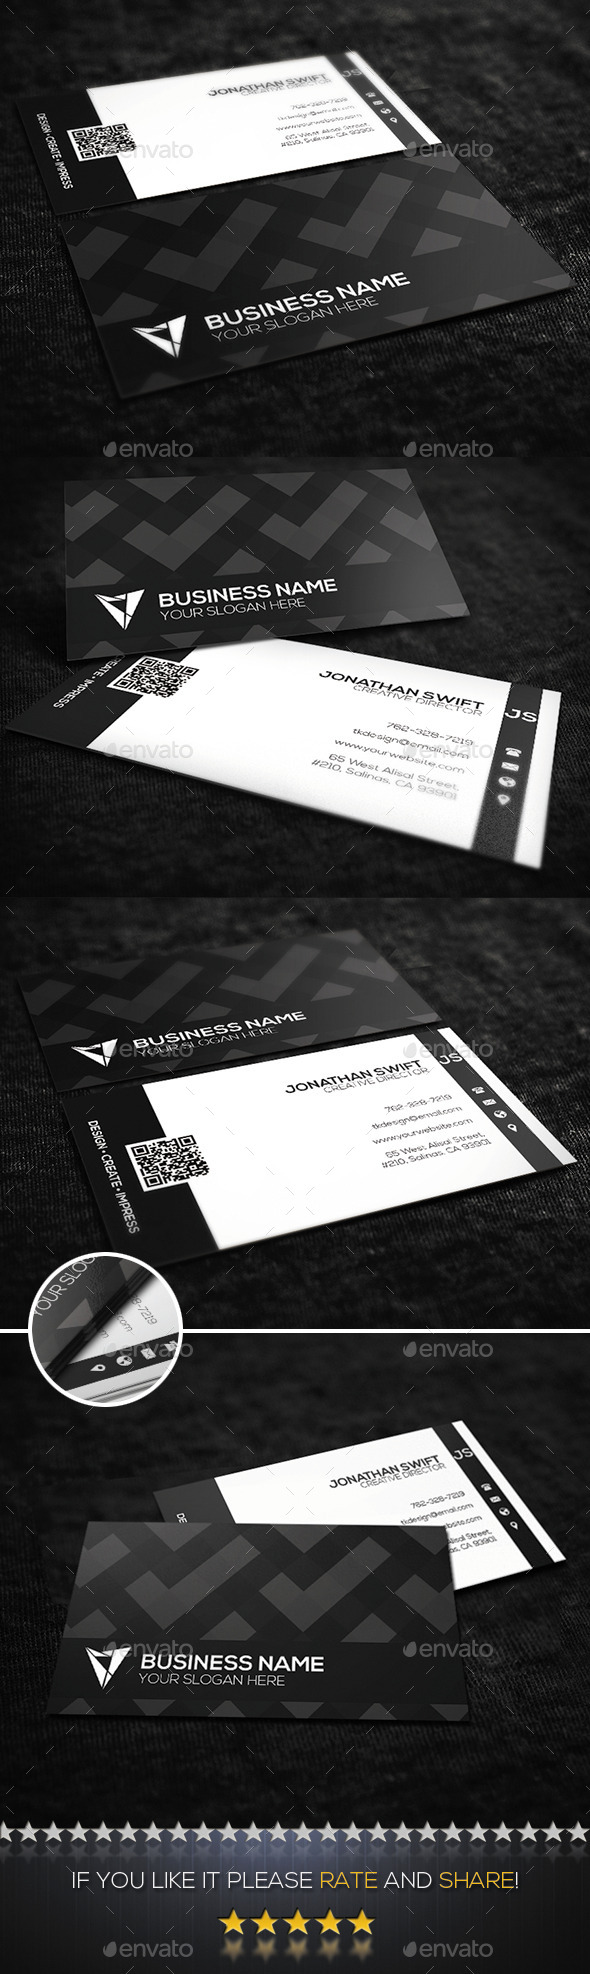 Black & White Corporate Business Card No.01  - Corporate Business Cards